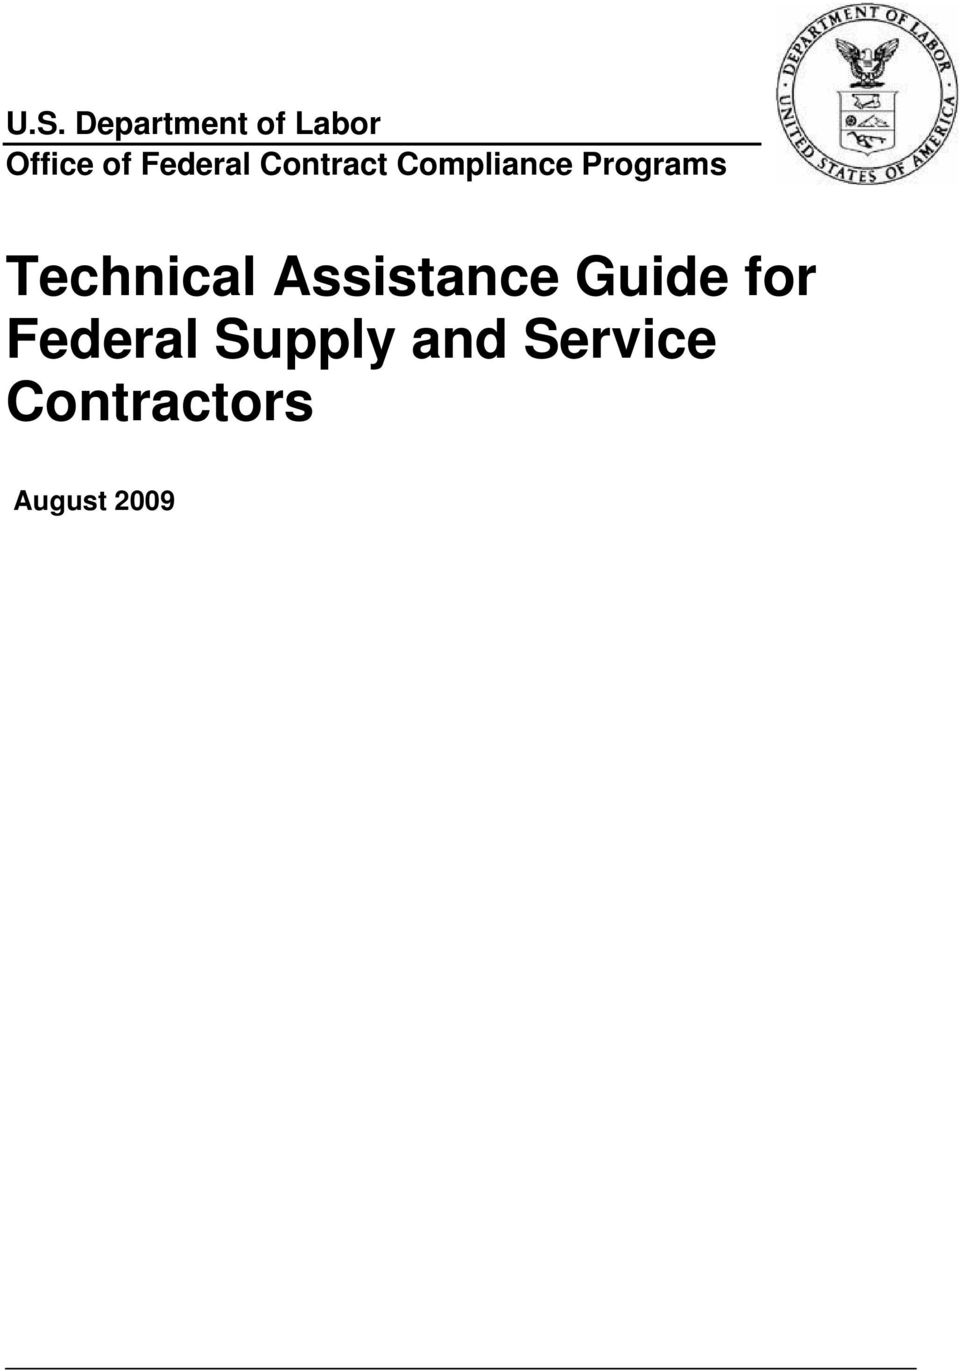 Technical Assistance Guide for Federal